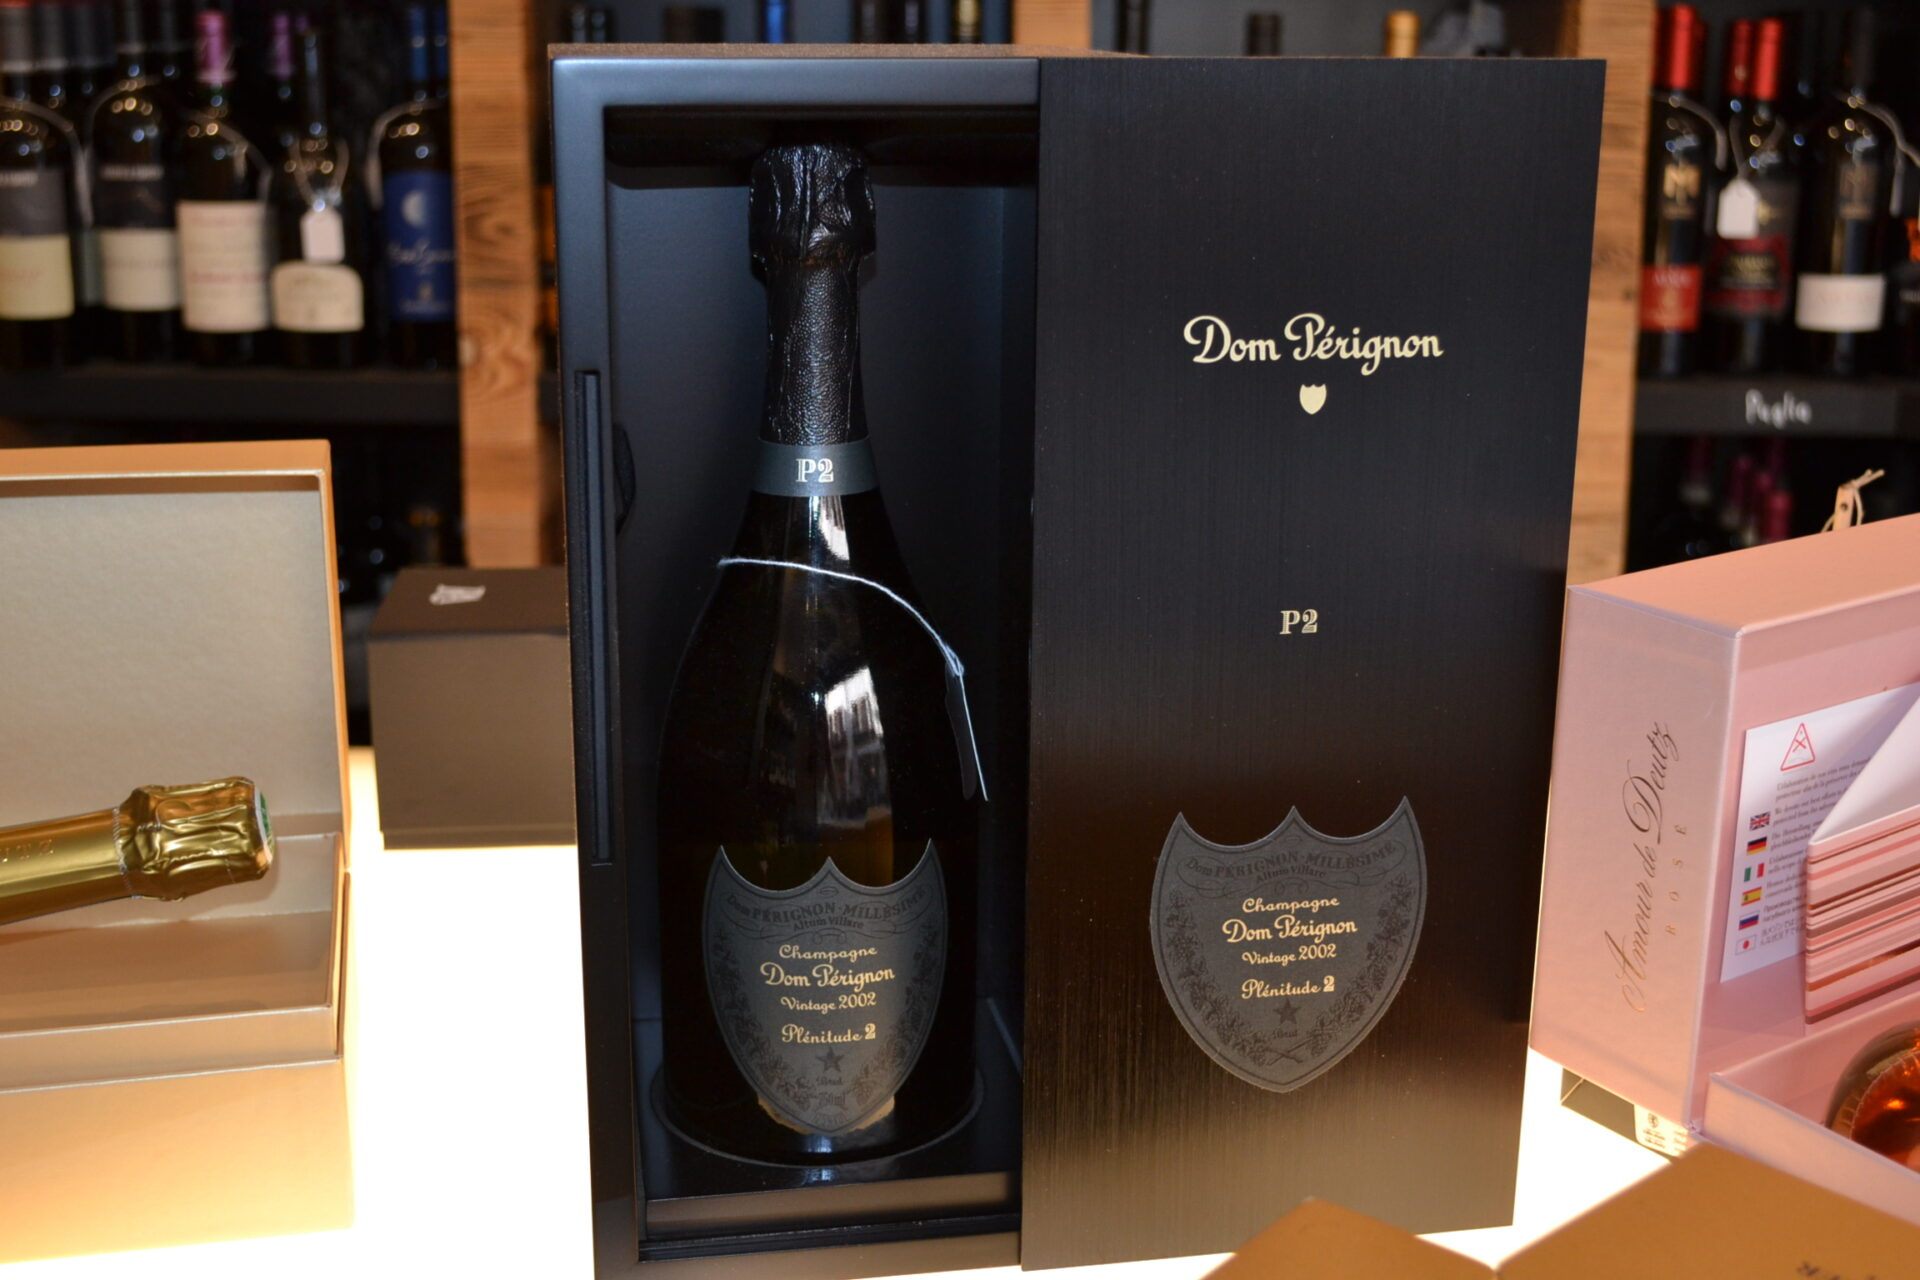 Decanter Aosta